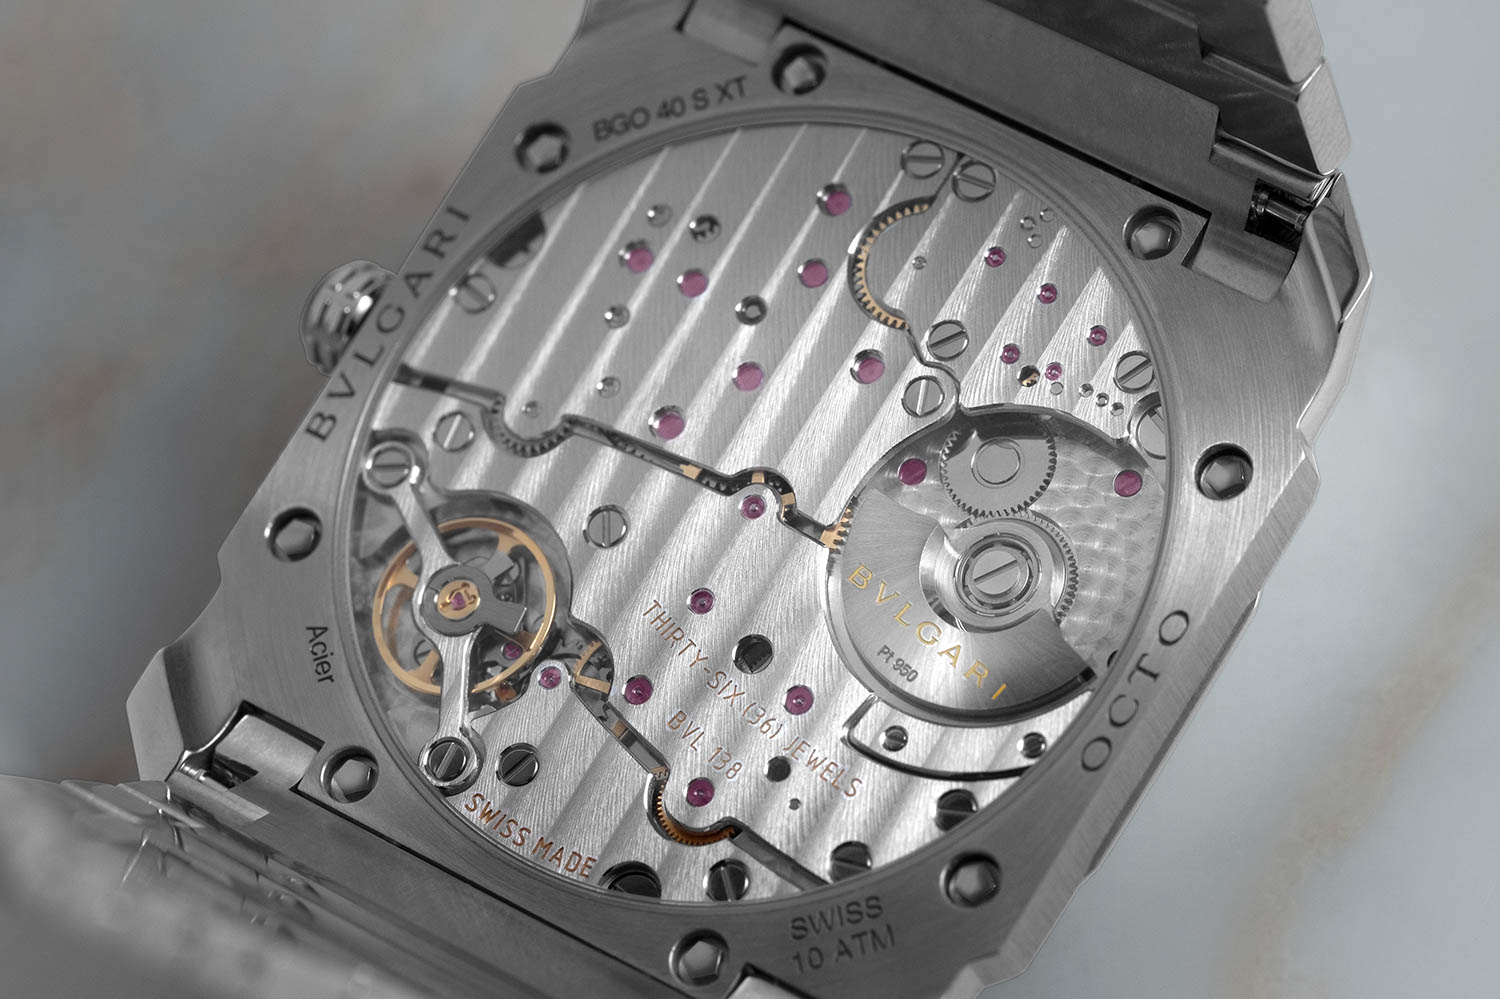 The BLV138 automatic that powers the Octo Finissimo Automatic Satin-Polished Steel (Image © Revolution)